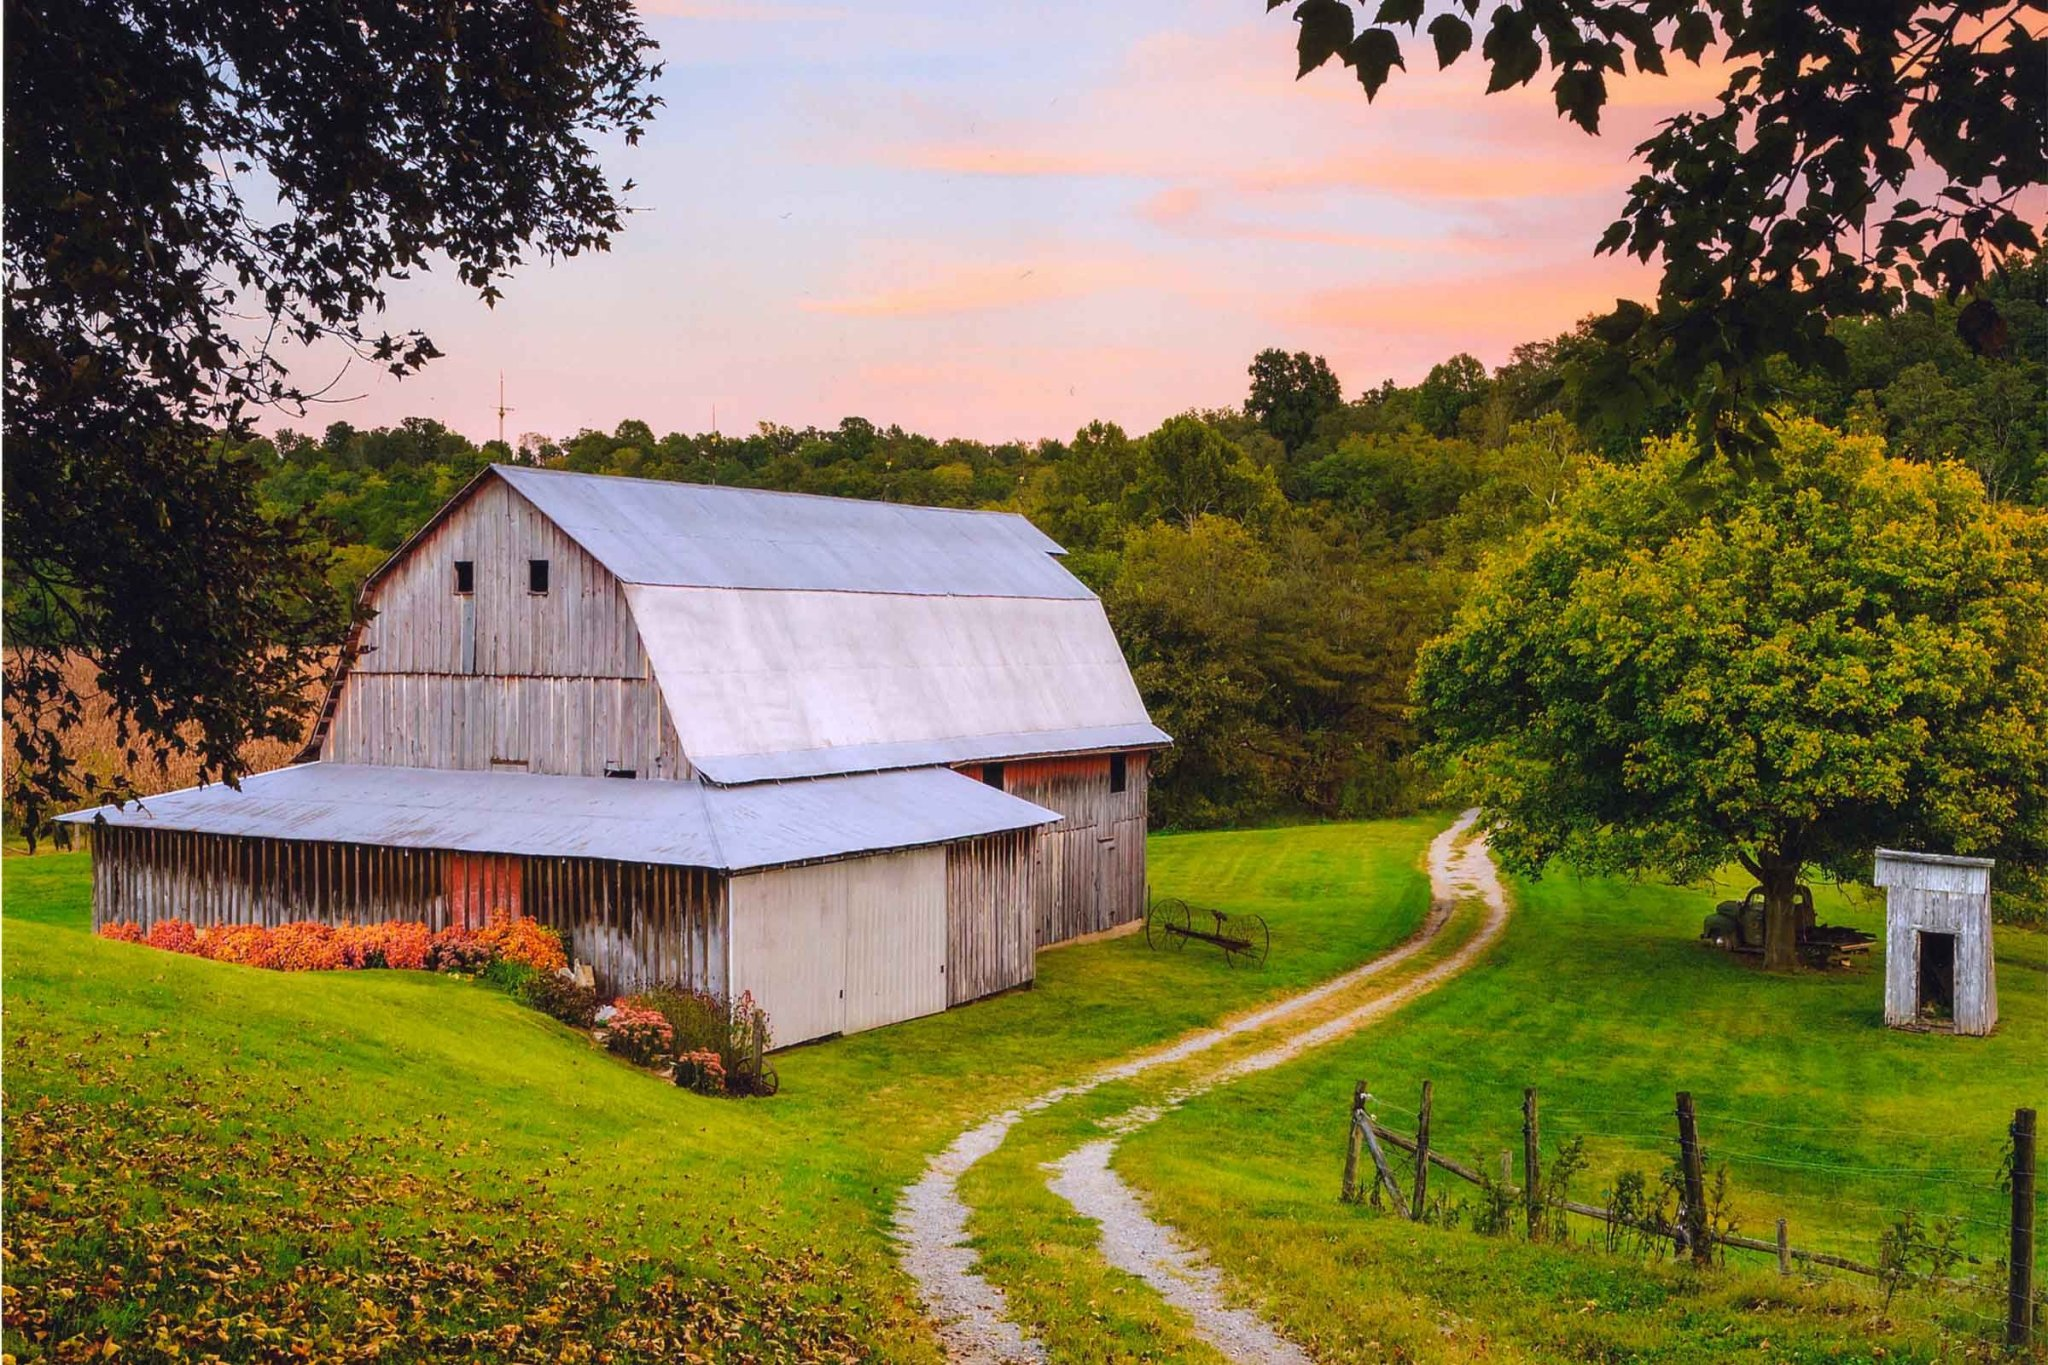 50 of the Most Stunning Pictures of Fall Across America